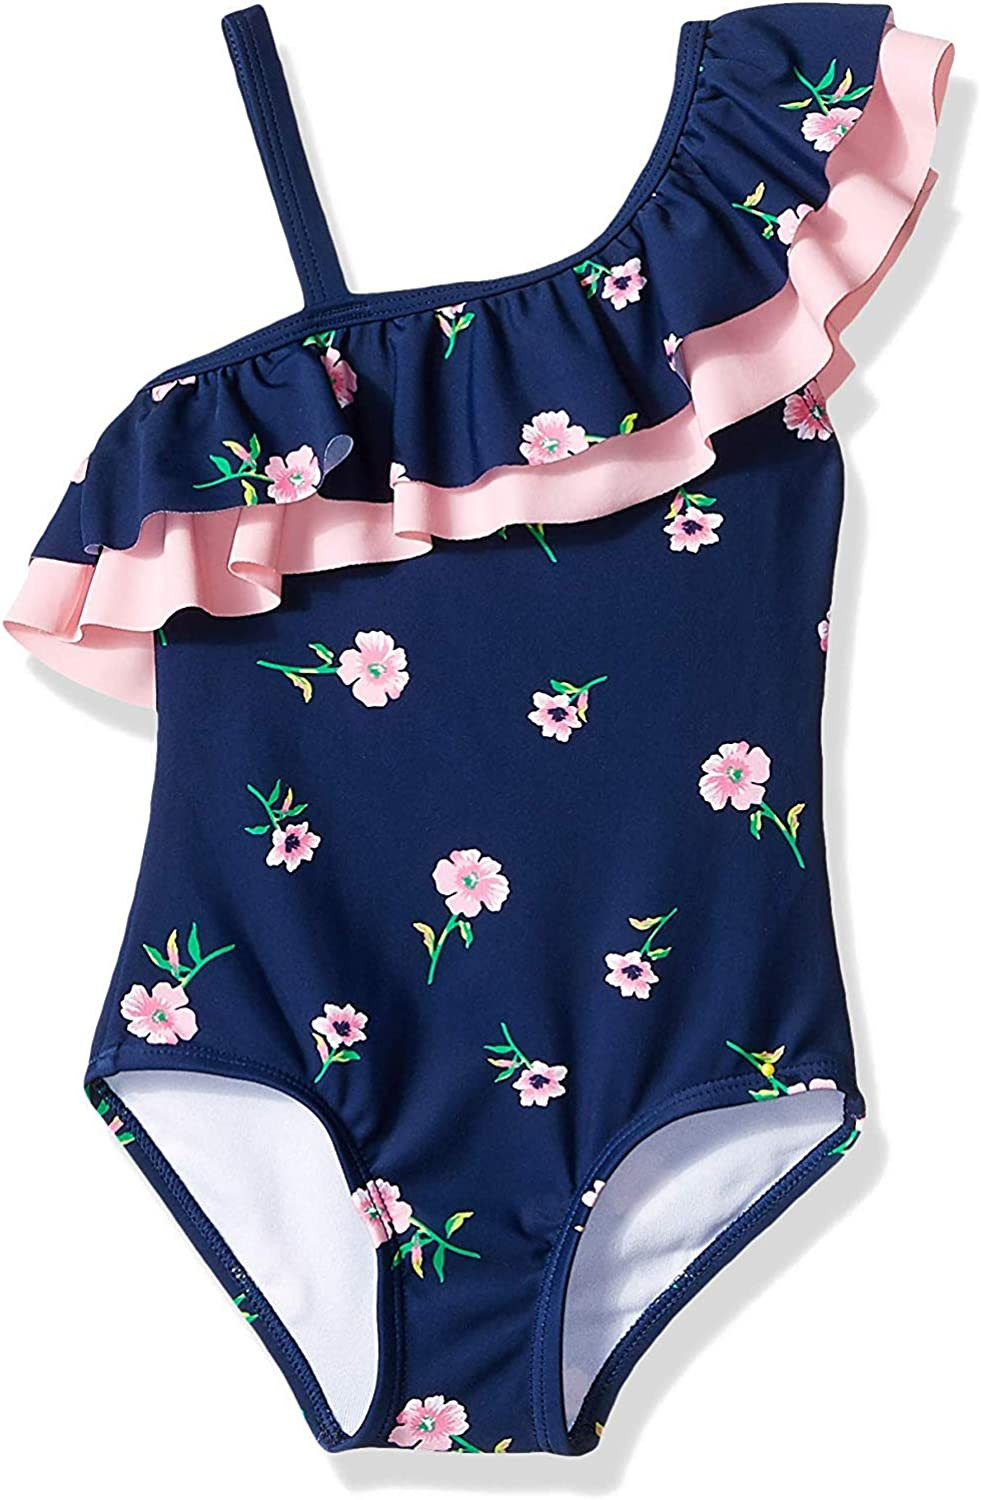 4-13Years Liliane Swimsuits for Girls